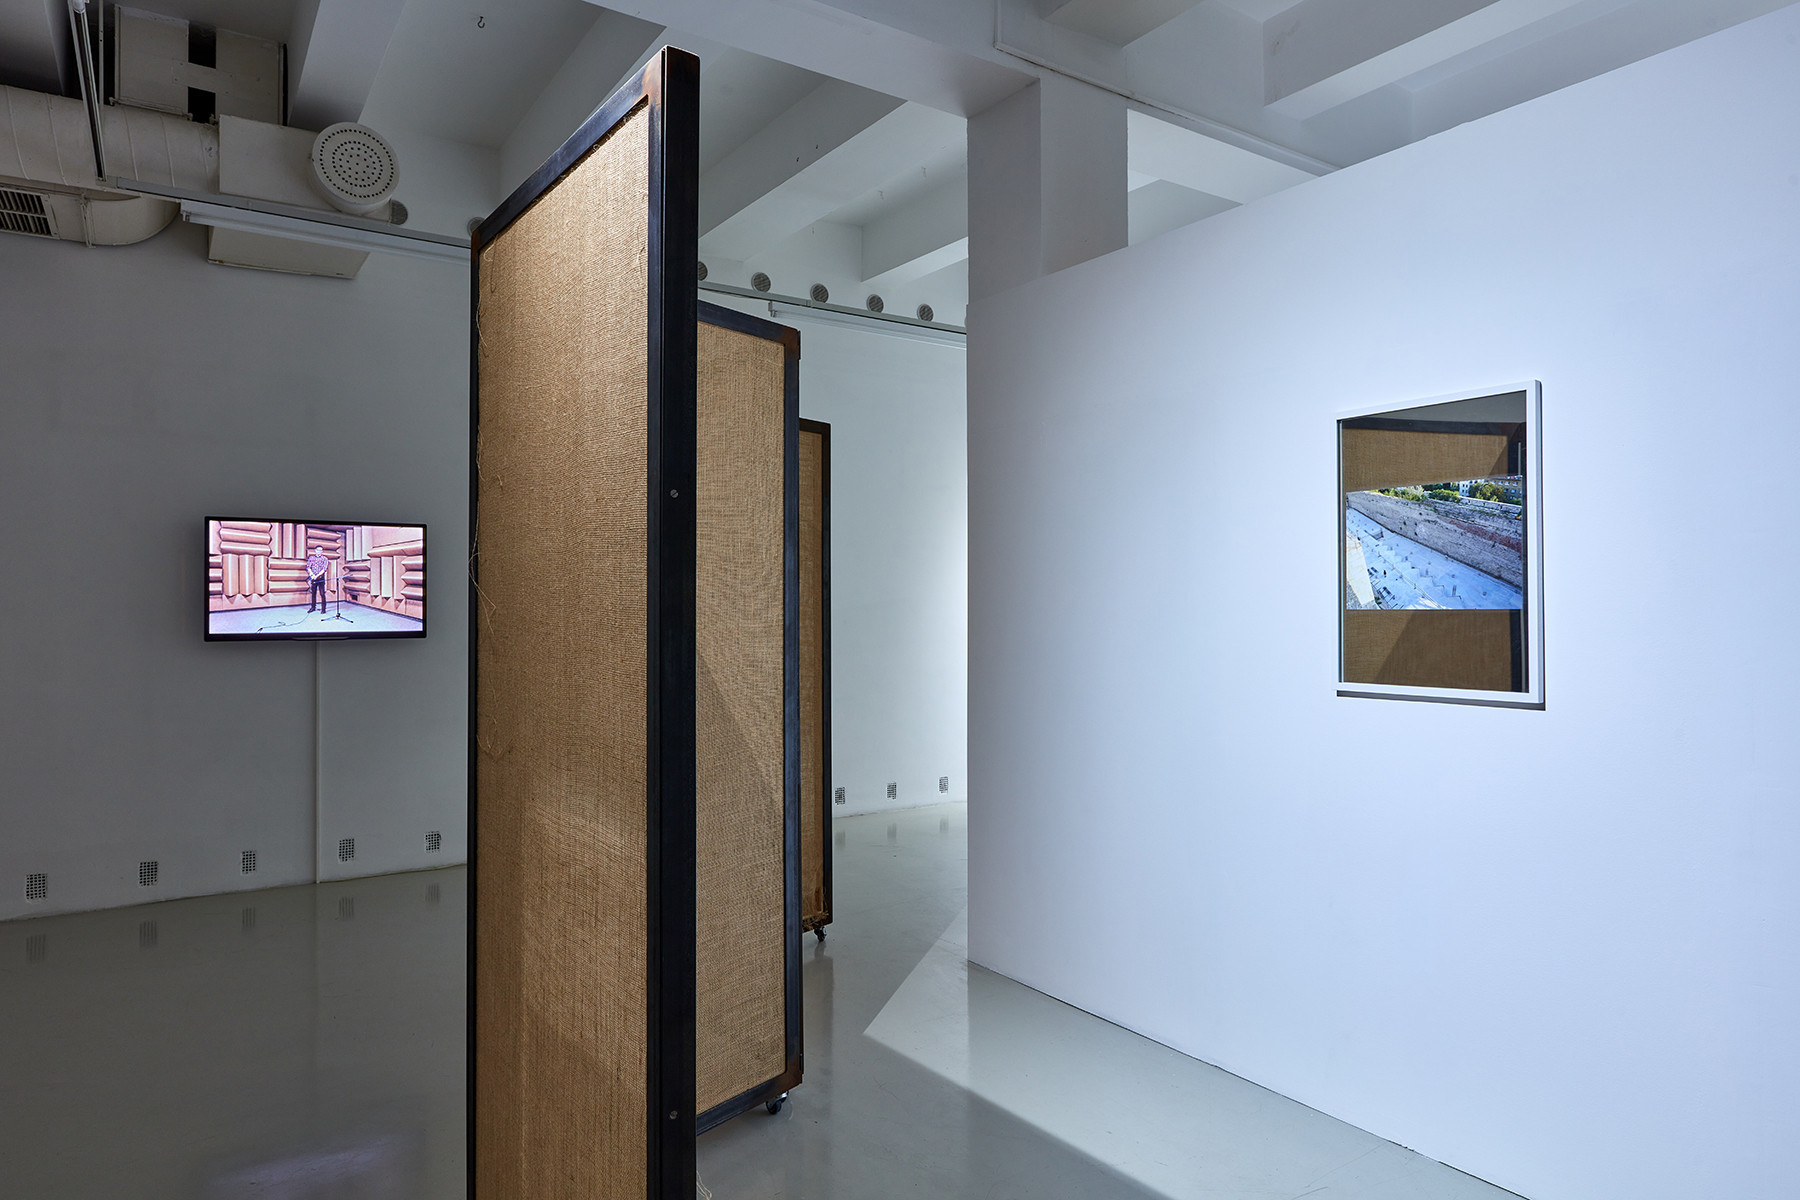 Exhibition view. On the left: Roman Štětina: Untitled (Speak so I can see you), 2020. installation (jute, iron, wood); On the right: Andreas Fogarasi: Mirrors - Car park of Buda castle during construction, Budapest, 2011. C-Print on mirror | photo: Dávid Biró